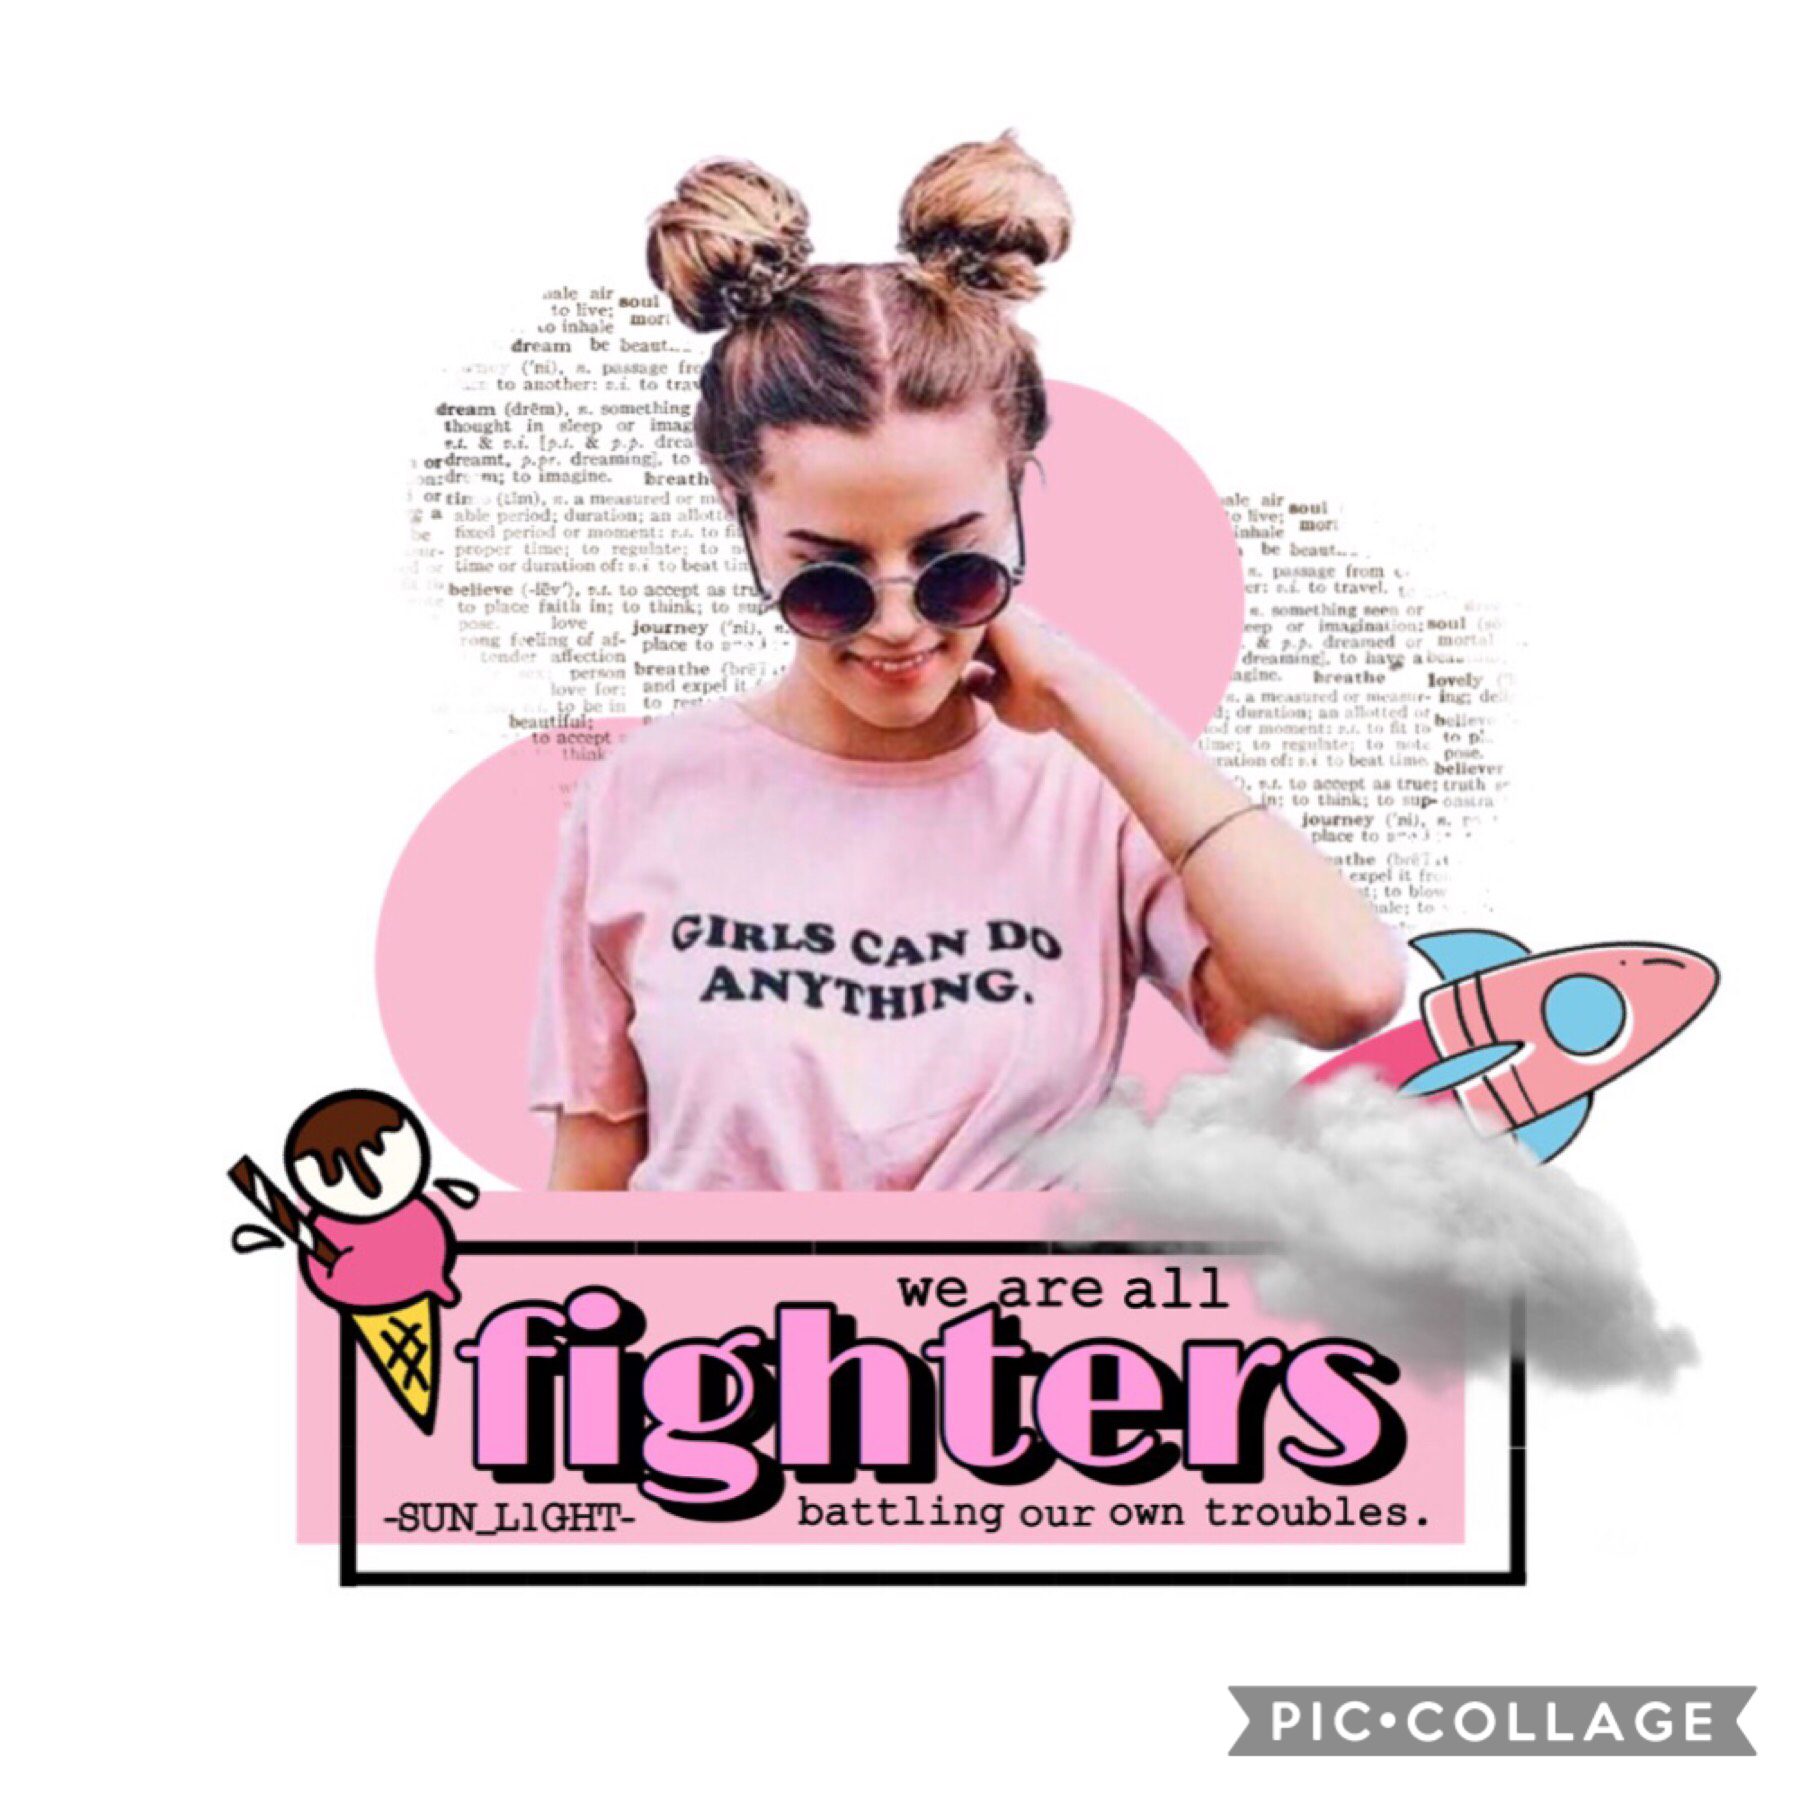 💞collab with the wonderful, @audreyhepburn24 ! go follow her rn!💞 part two of our collabs! Check out the first one (scroll down lol) on her acc! For this she did the pic of the girl and I did the rest! Gonna post probably a few more for this weekend! Comm